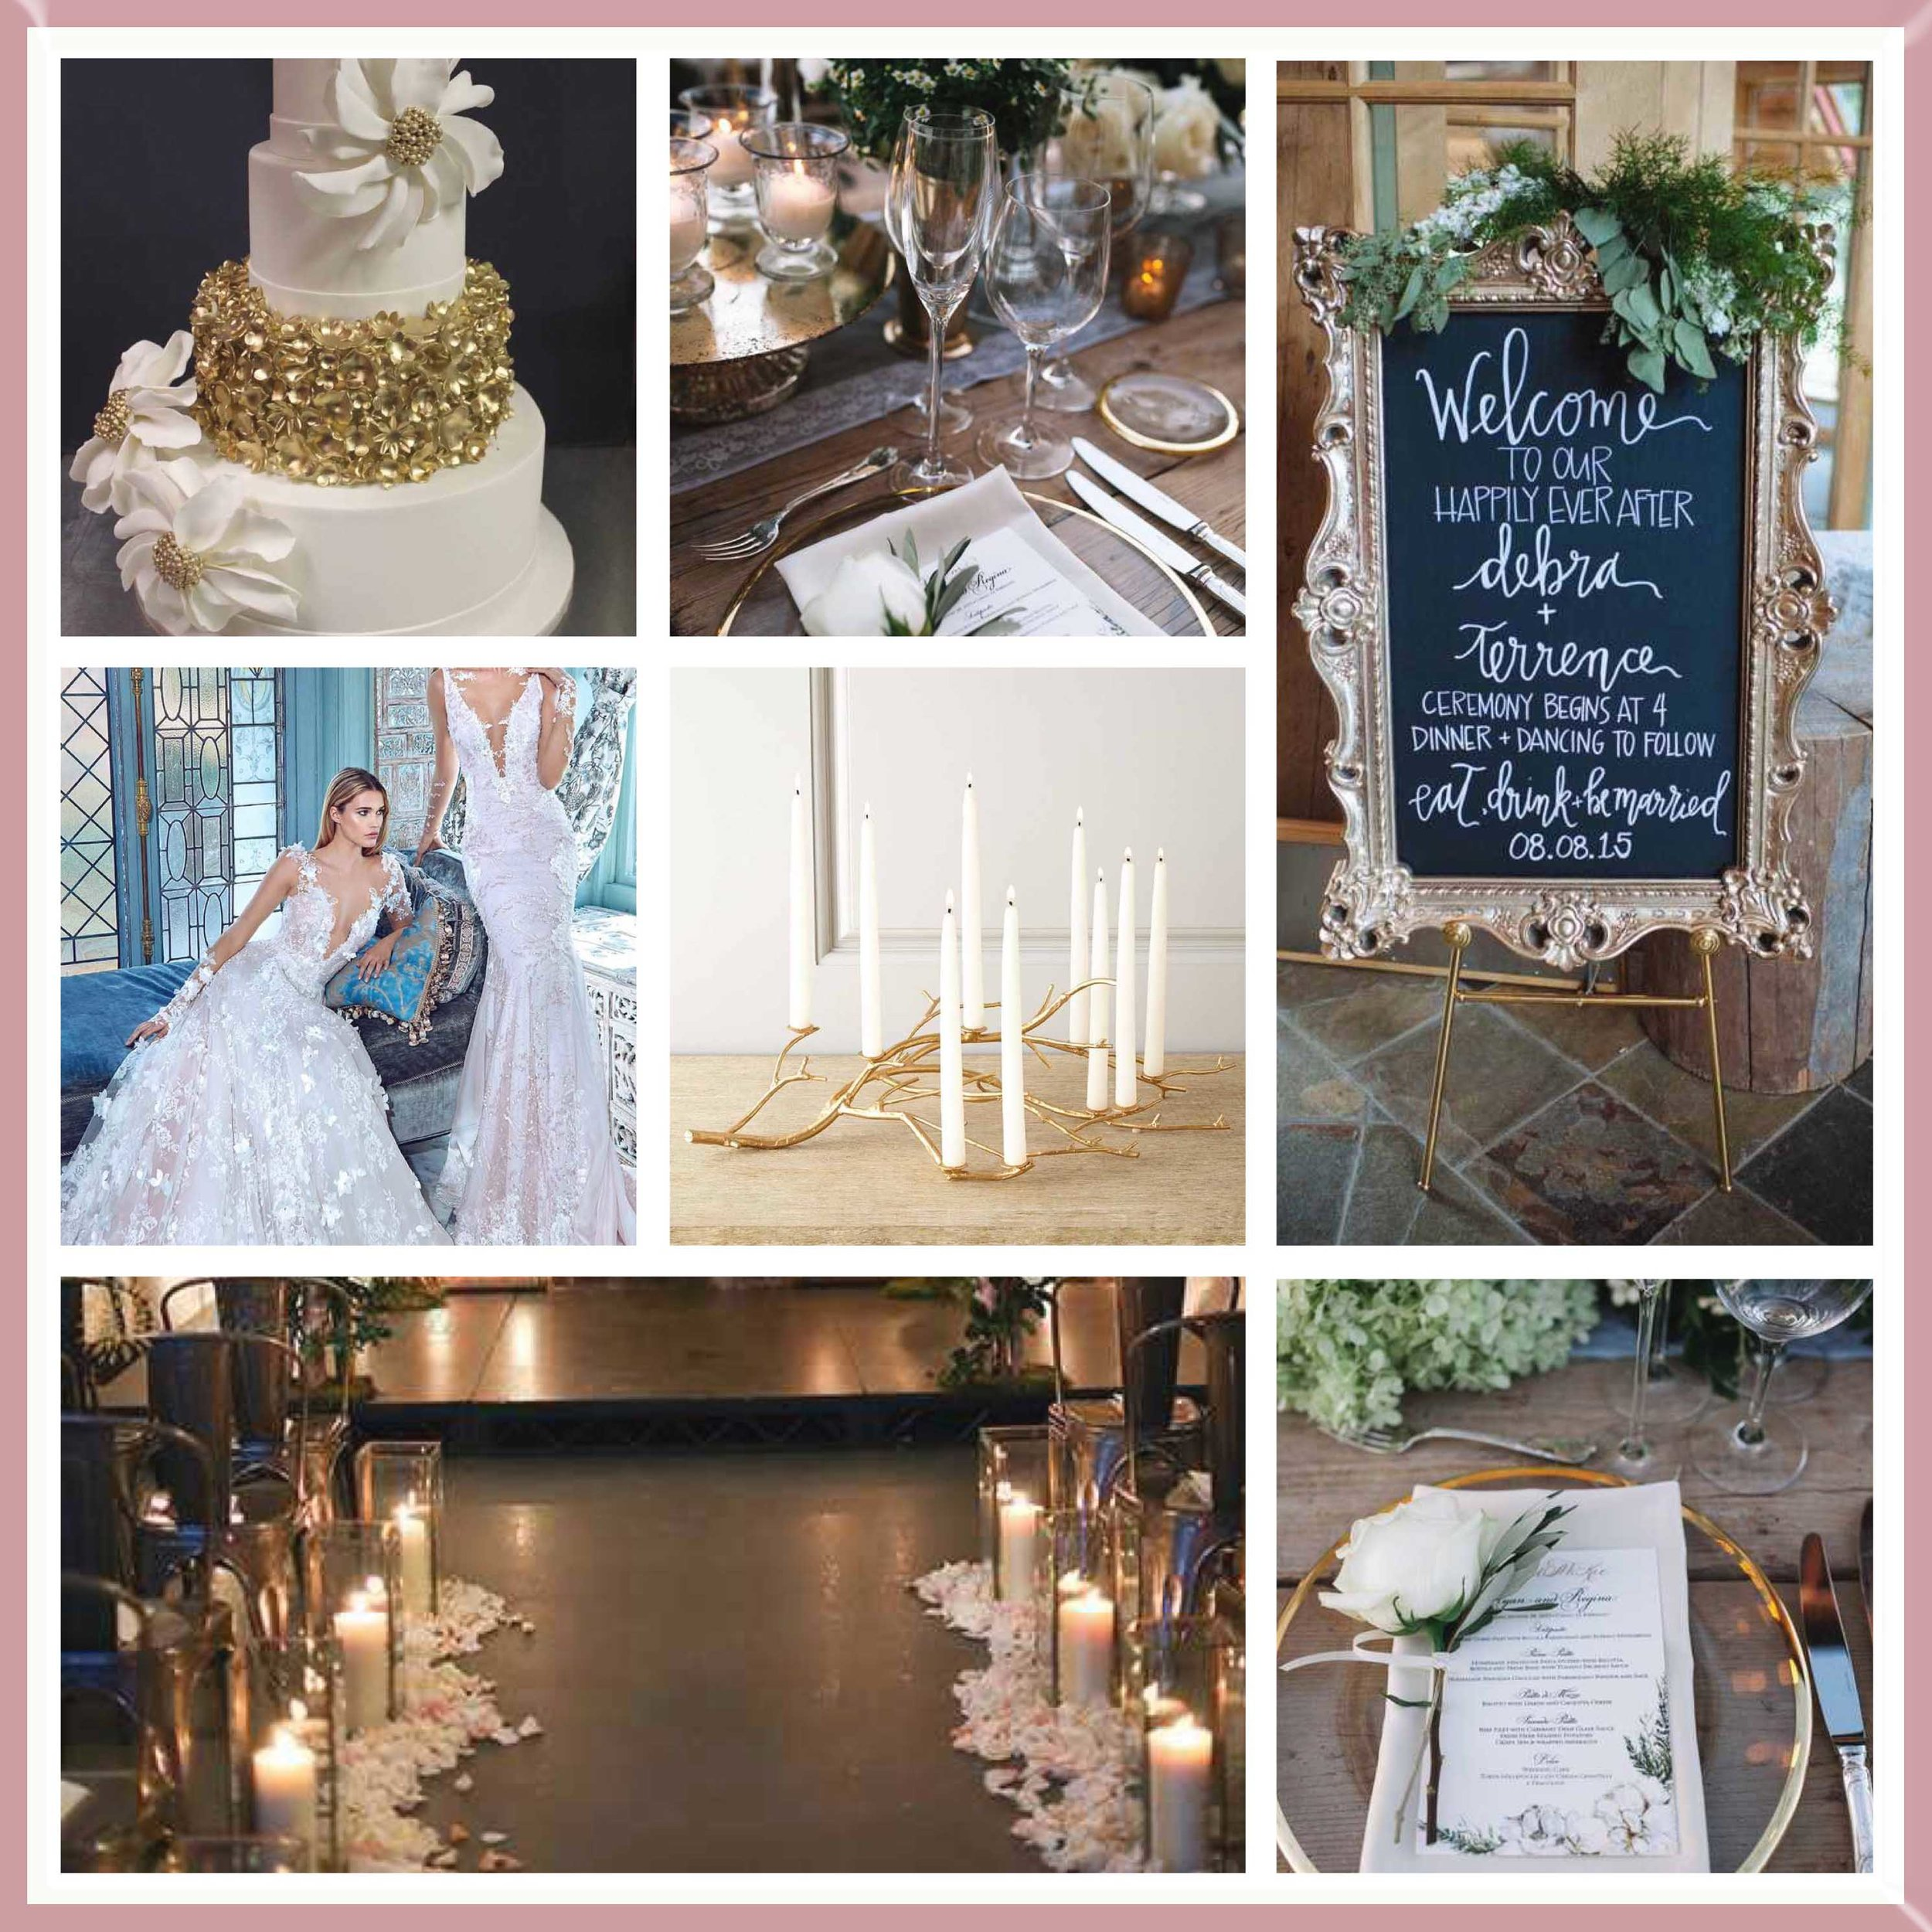 Metallic Gold & Bronze mood board designed by Luxe by Minihaha & co.